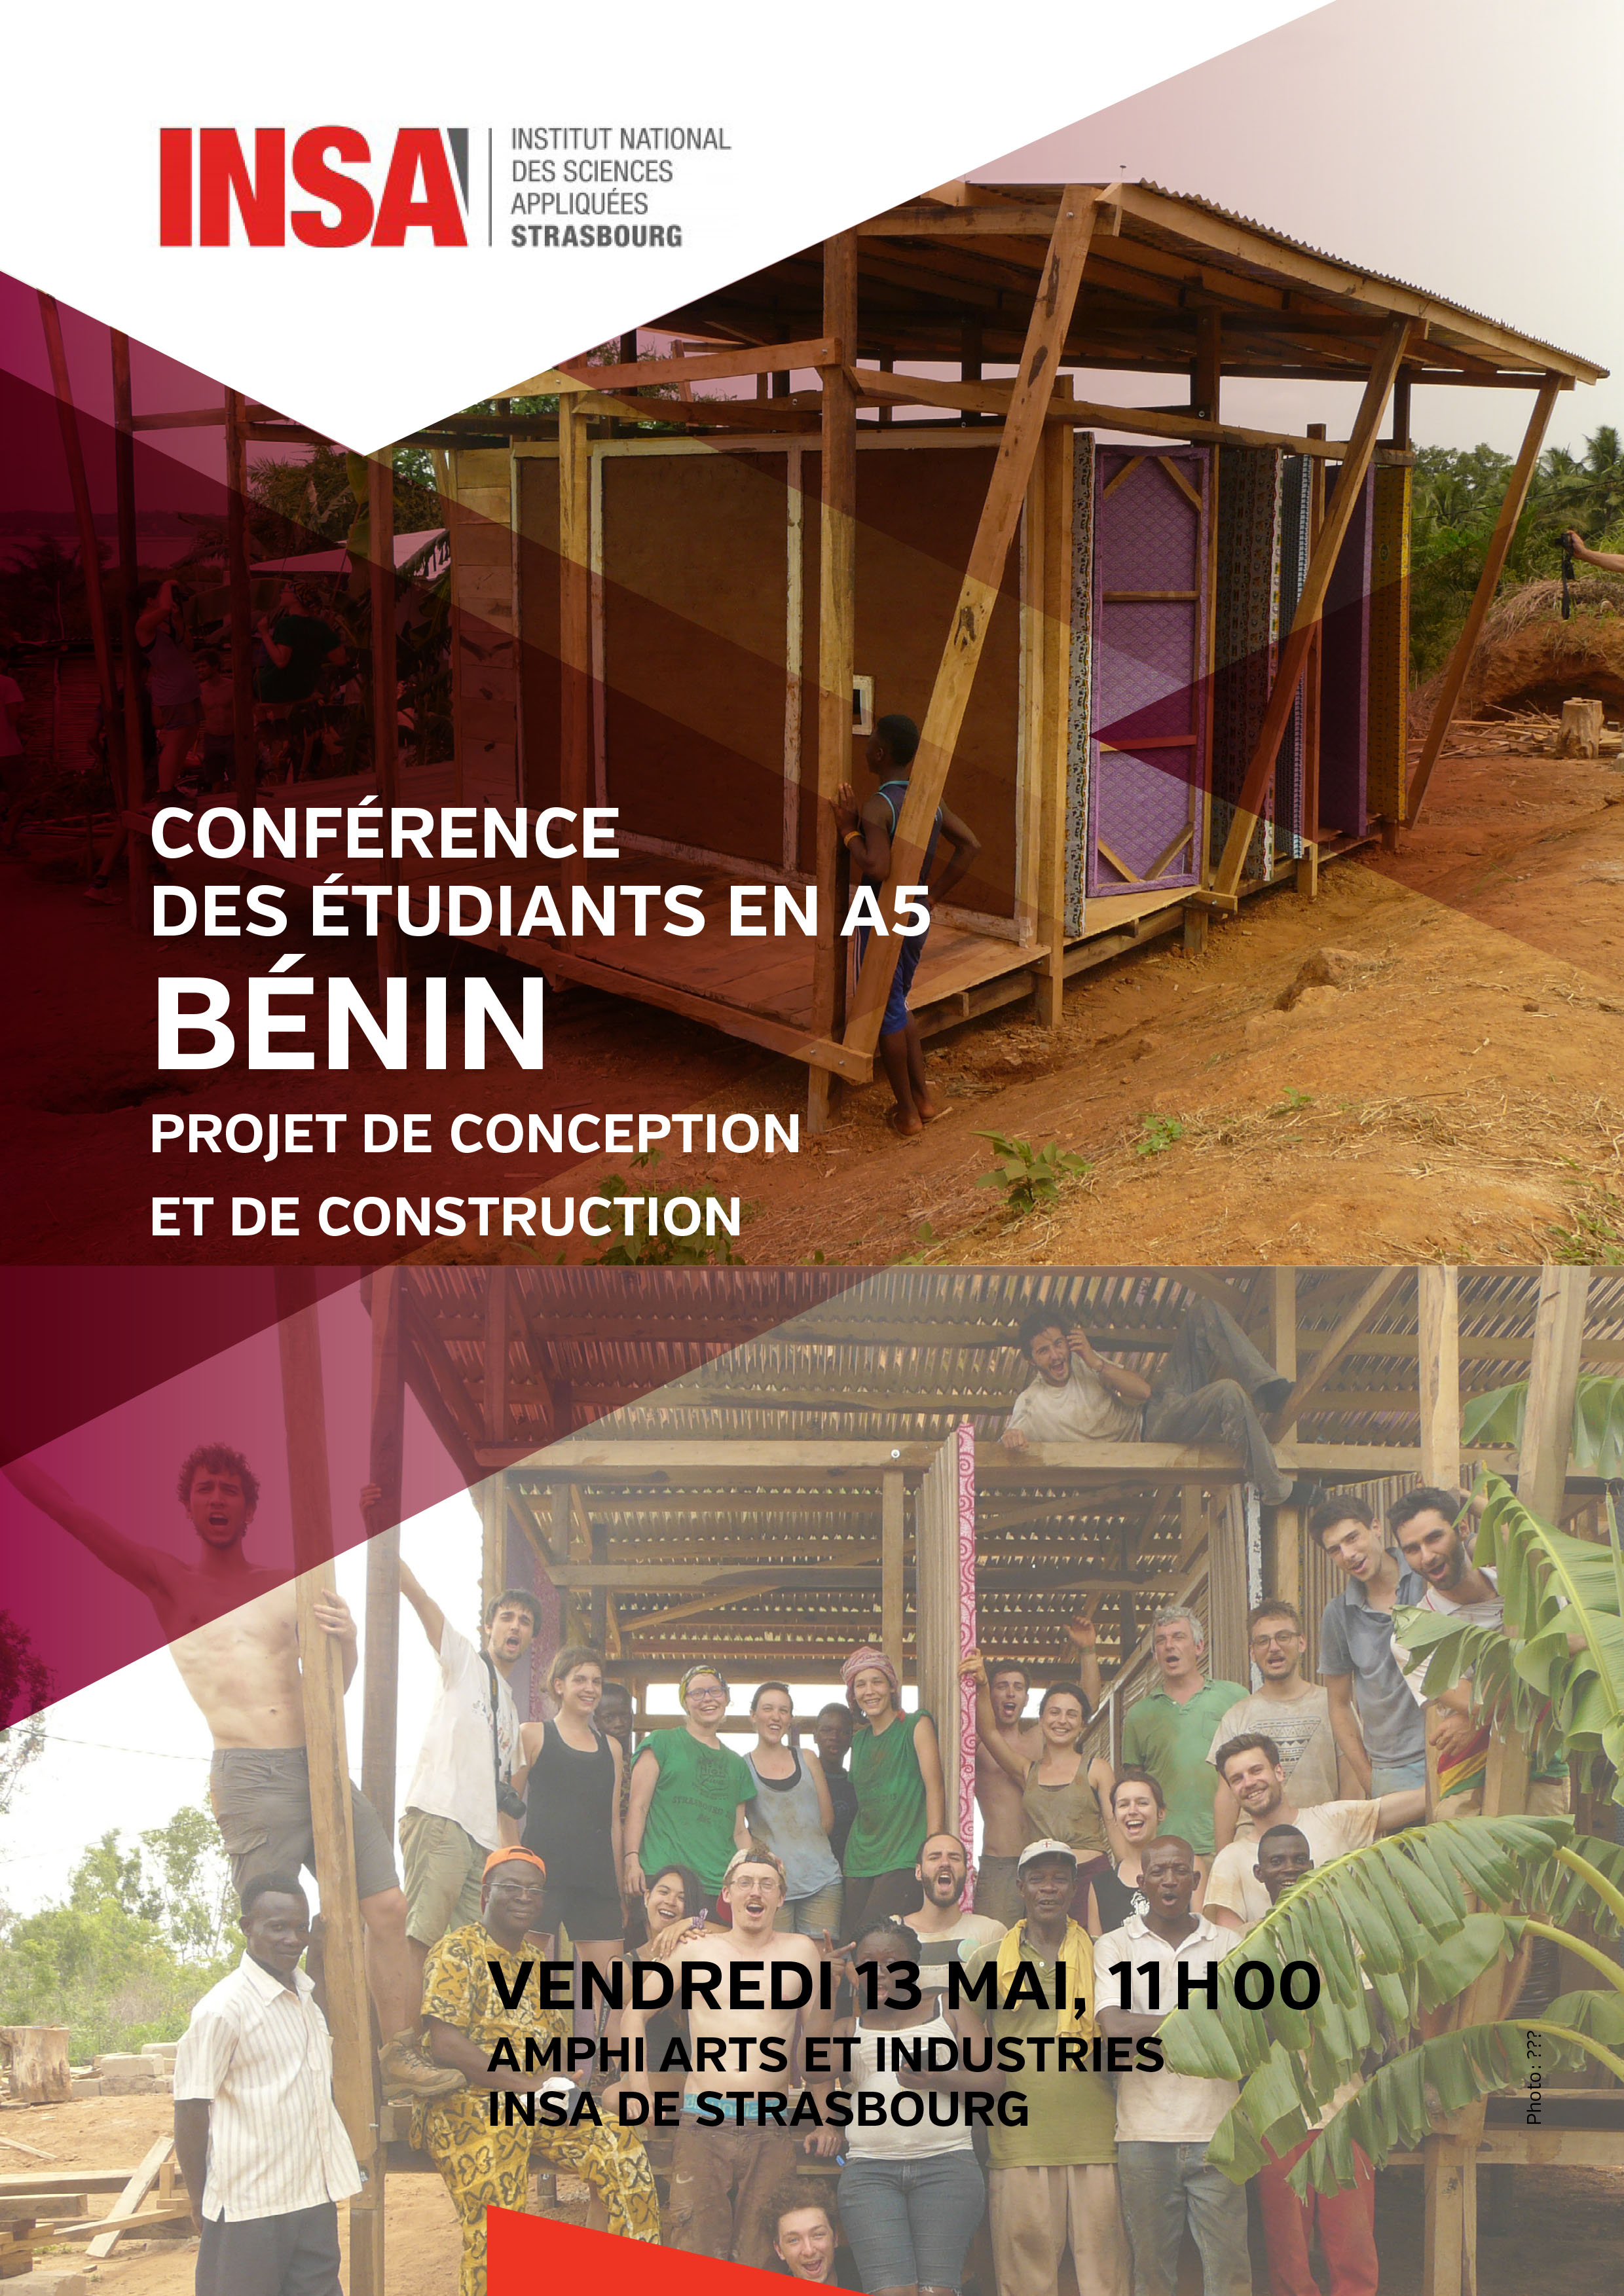 160506_R_Affiche_Conference_Benin